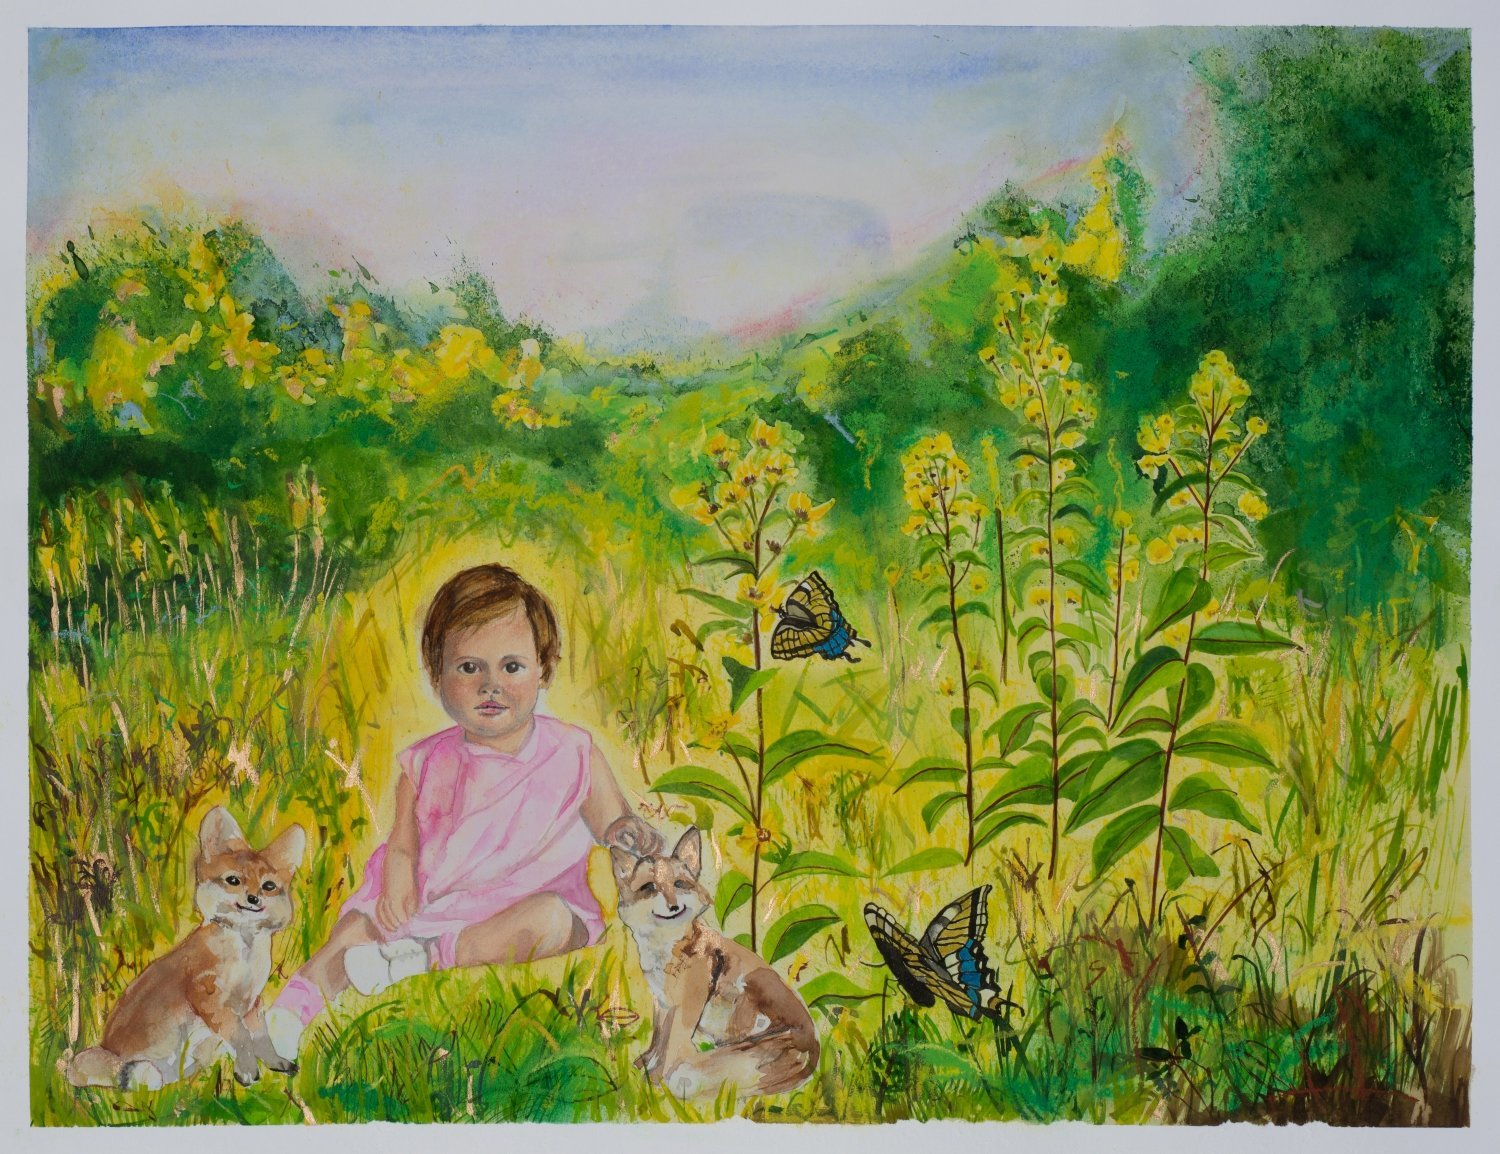 Little Ann in the Garden with Happy Foxes